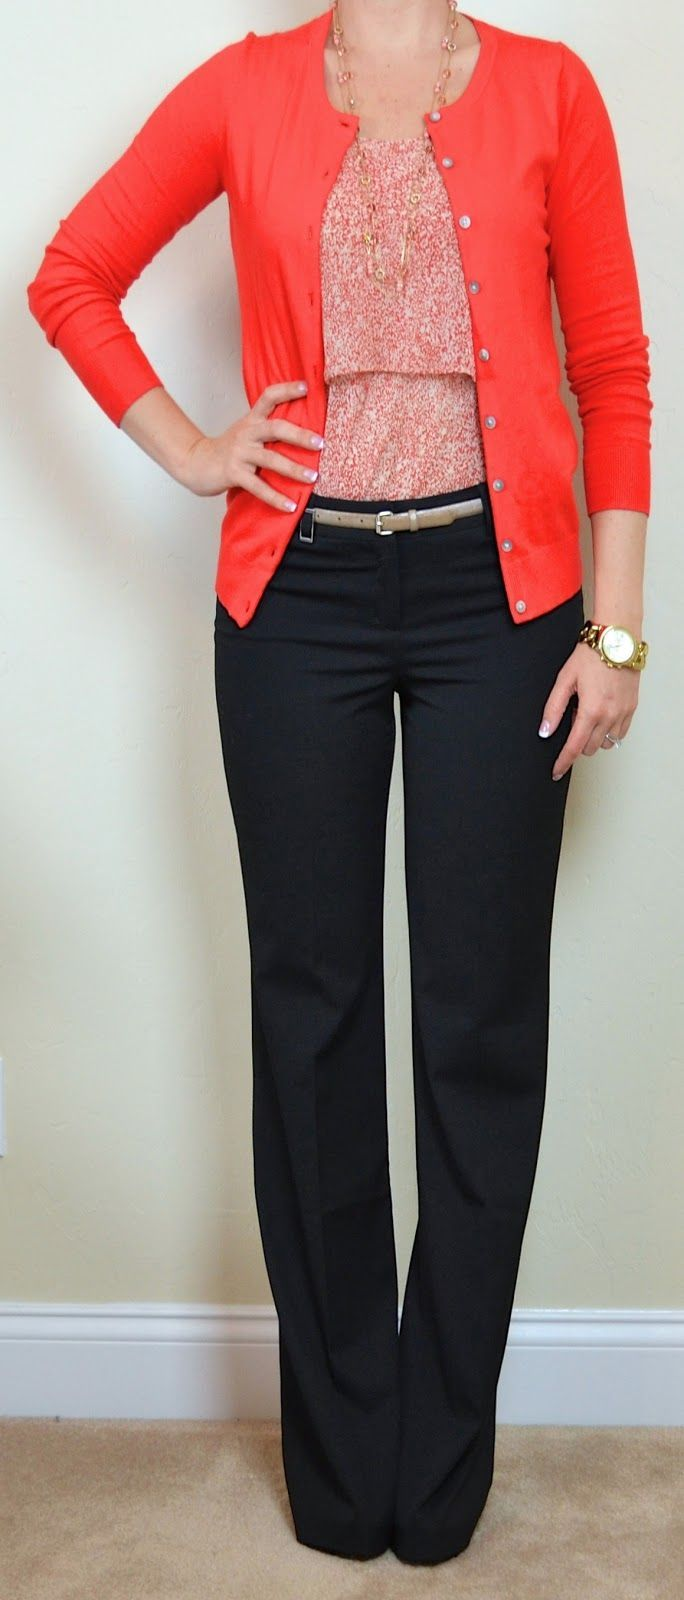 Outfit Posts: outfit post: red floral tiered camisole, red cardigan, black 'editor' pants